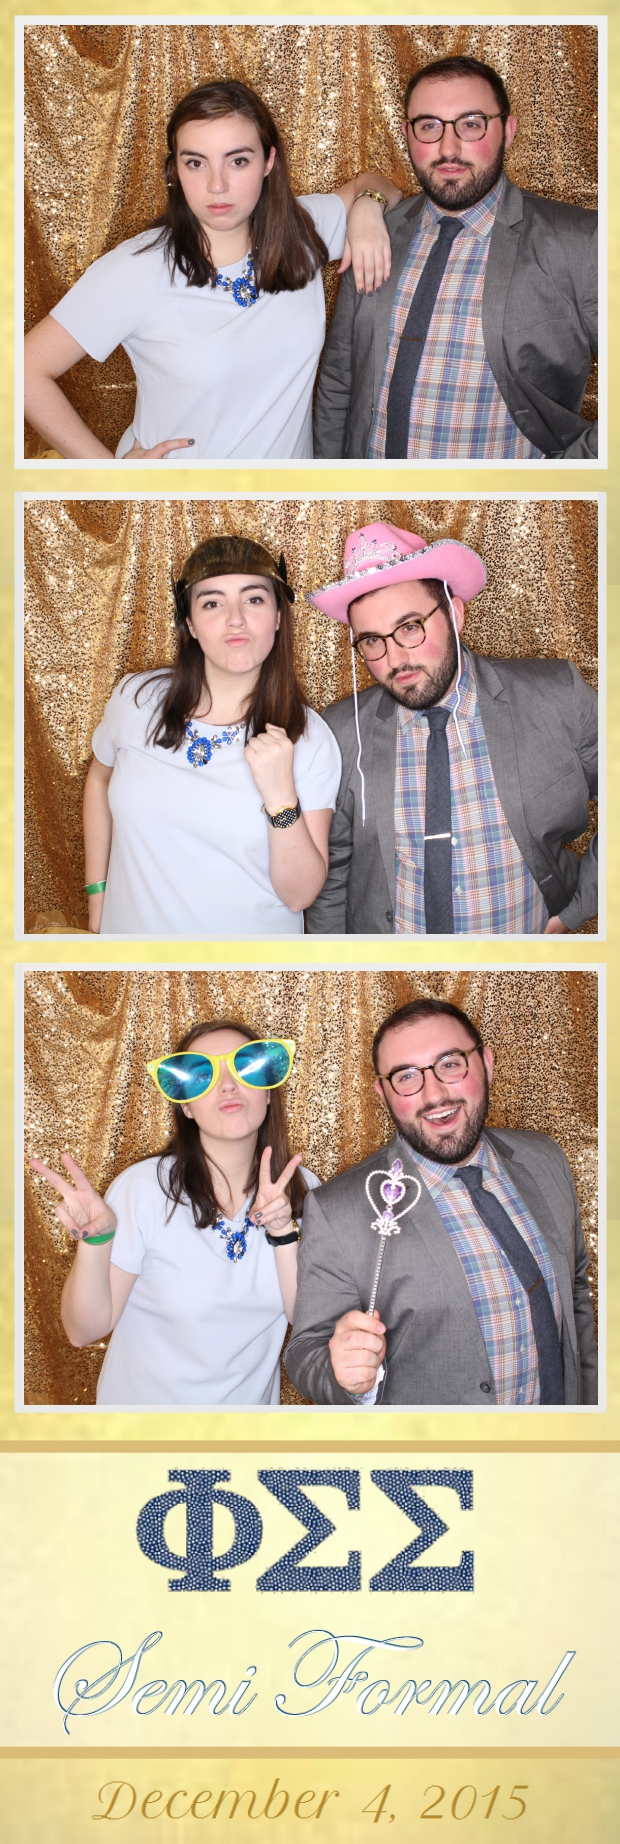 Guest House Events Photo Booth Phi Sigma Sigma Semi Formal (43).jpg